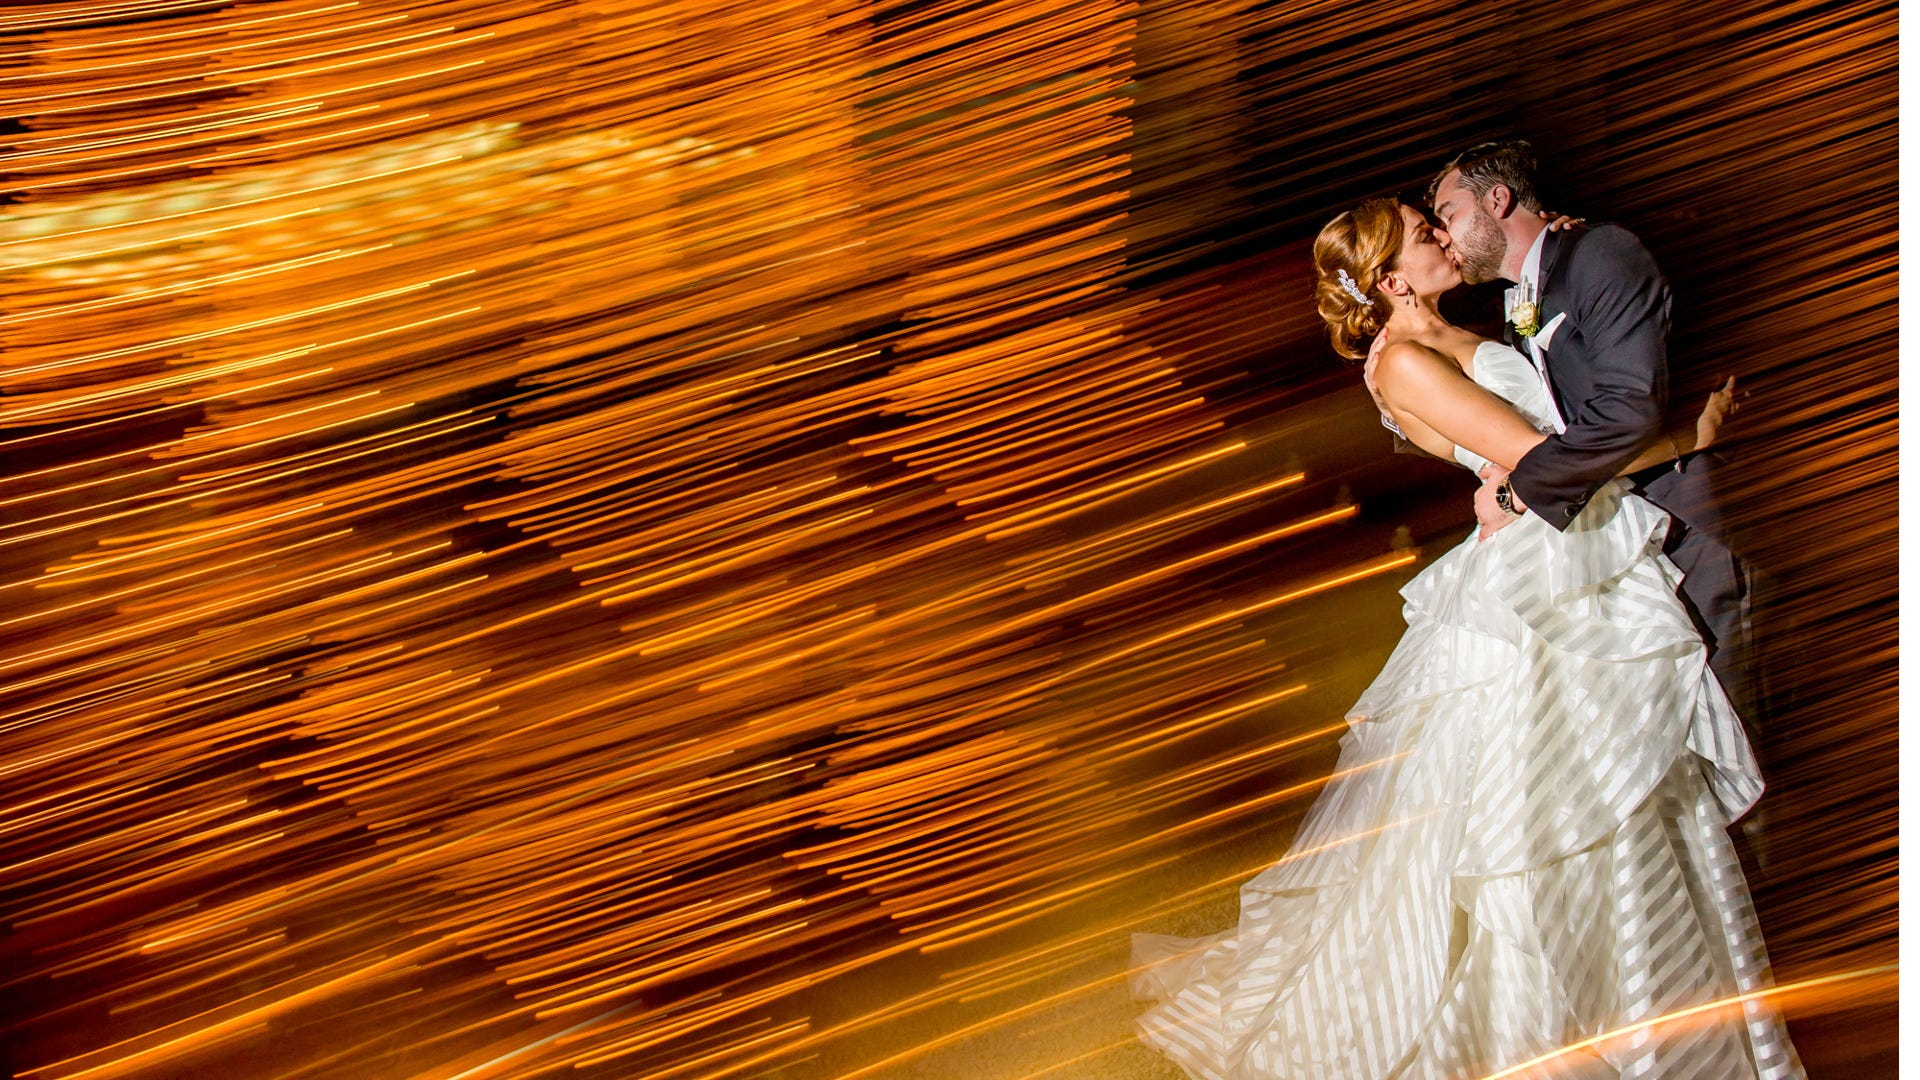 How To Learn Wedding Photography: Wedding Photography: The Art Of The Second Shot